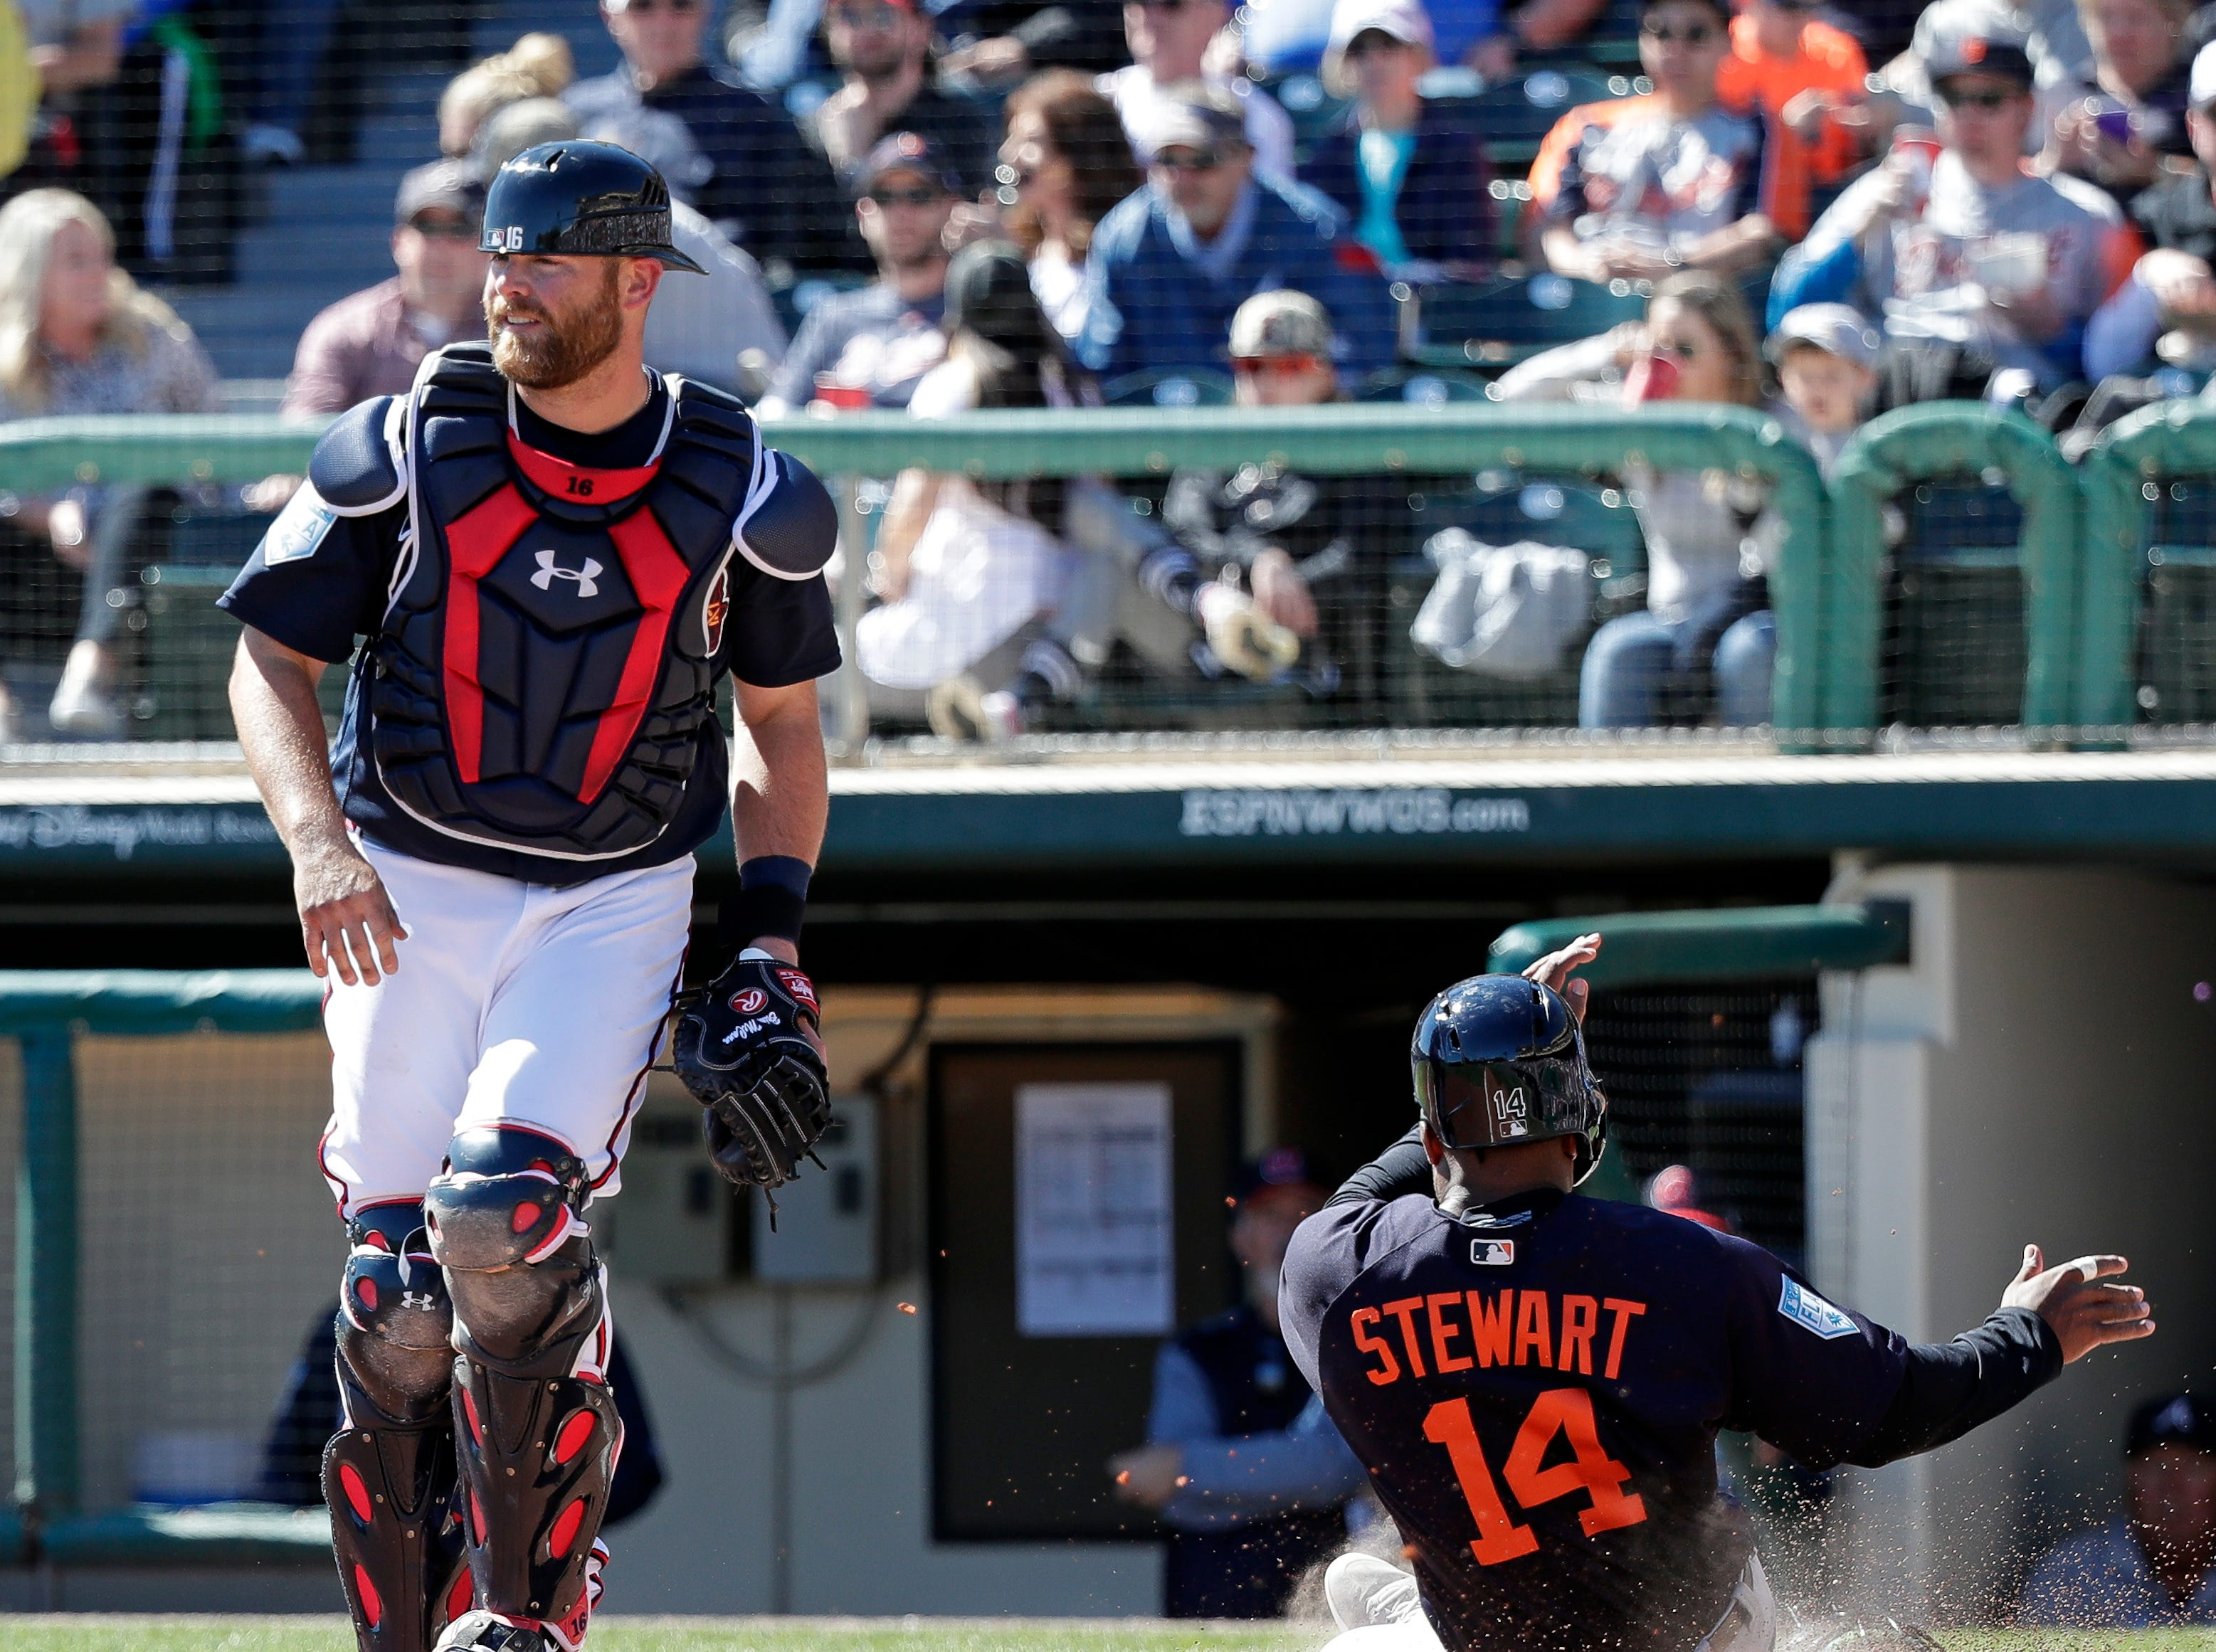 Detroit Tigers' Christin Stewart (14) scores on a base hit by Dustin Peterson in the fourth inning as Atlanta Braves catcher Brian McCann, left, waits for the throw in a spring baseball exhibition game, Wednesday, March 6, 2019, in Kissimmee, Fla